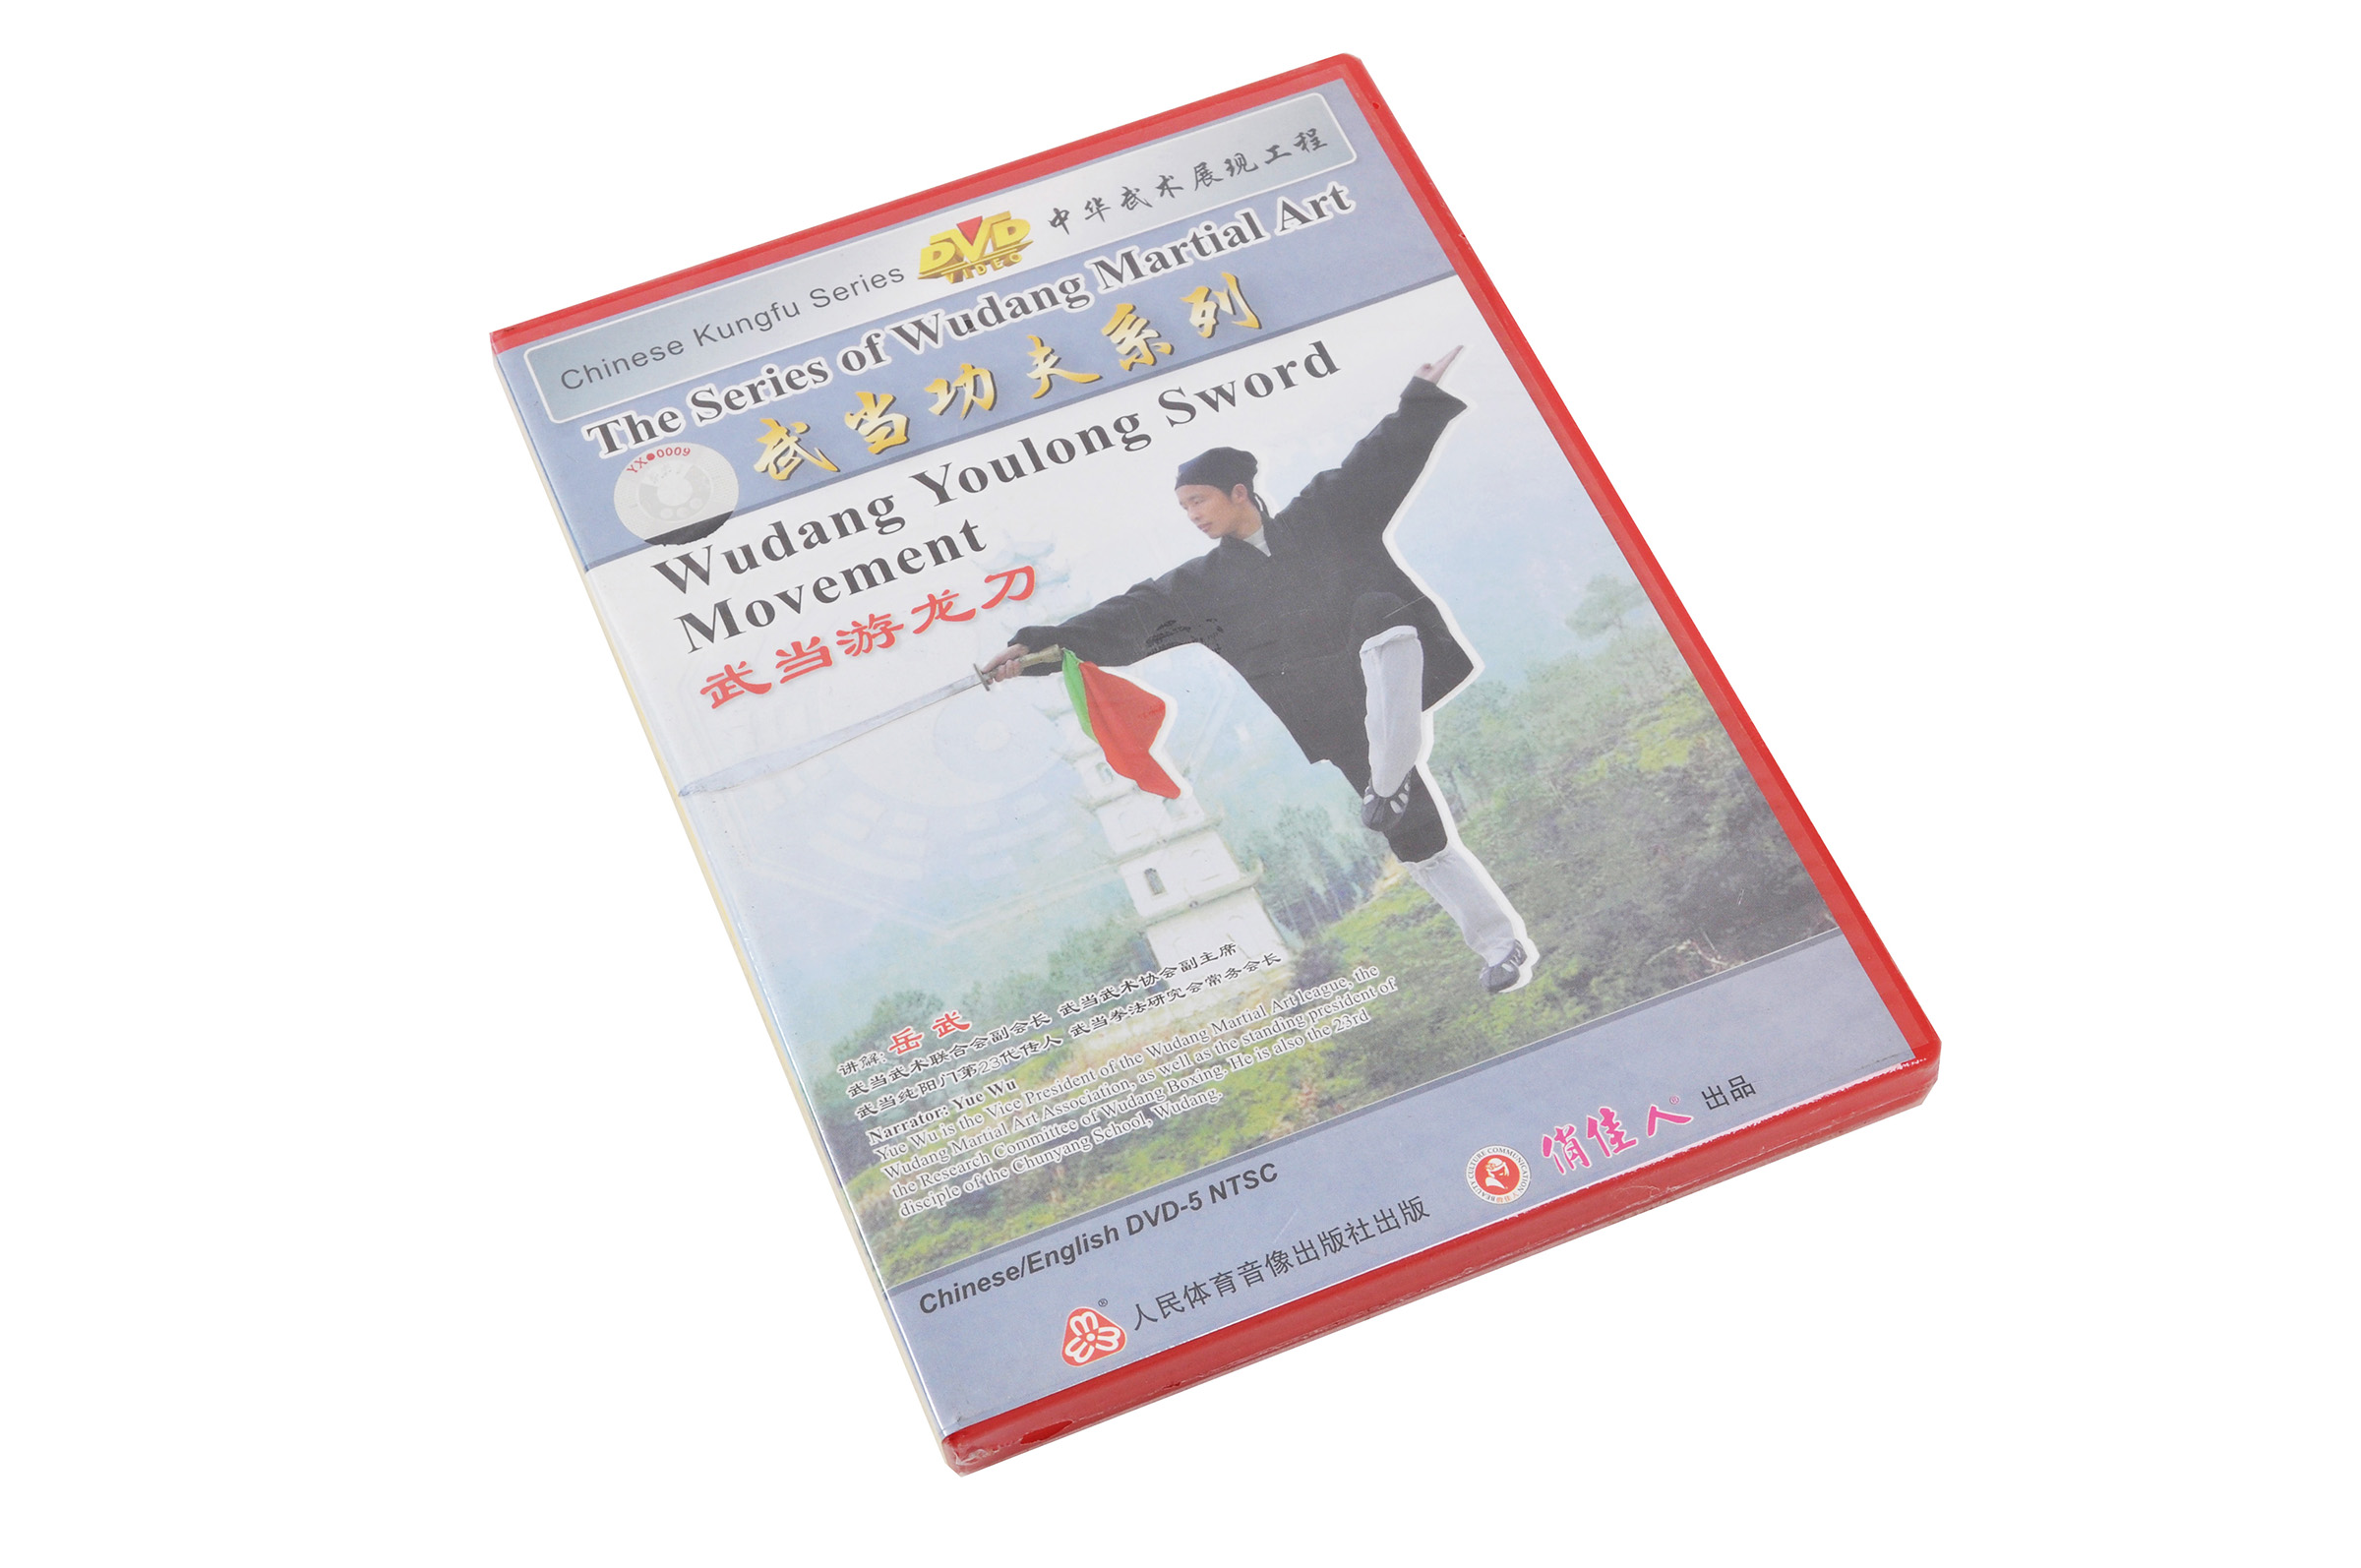 [DVD] Sabre Wudang Youlong